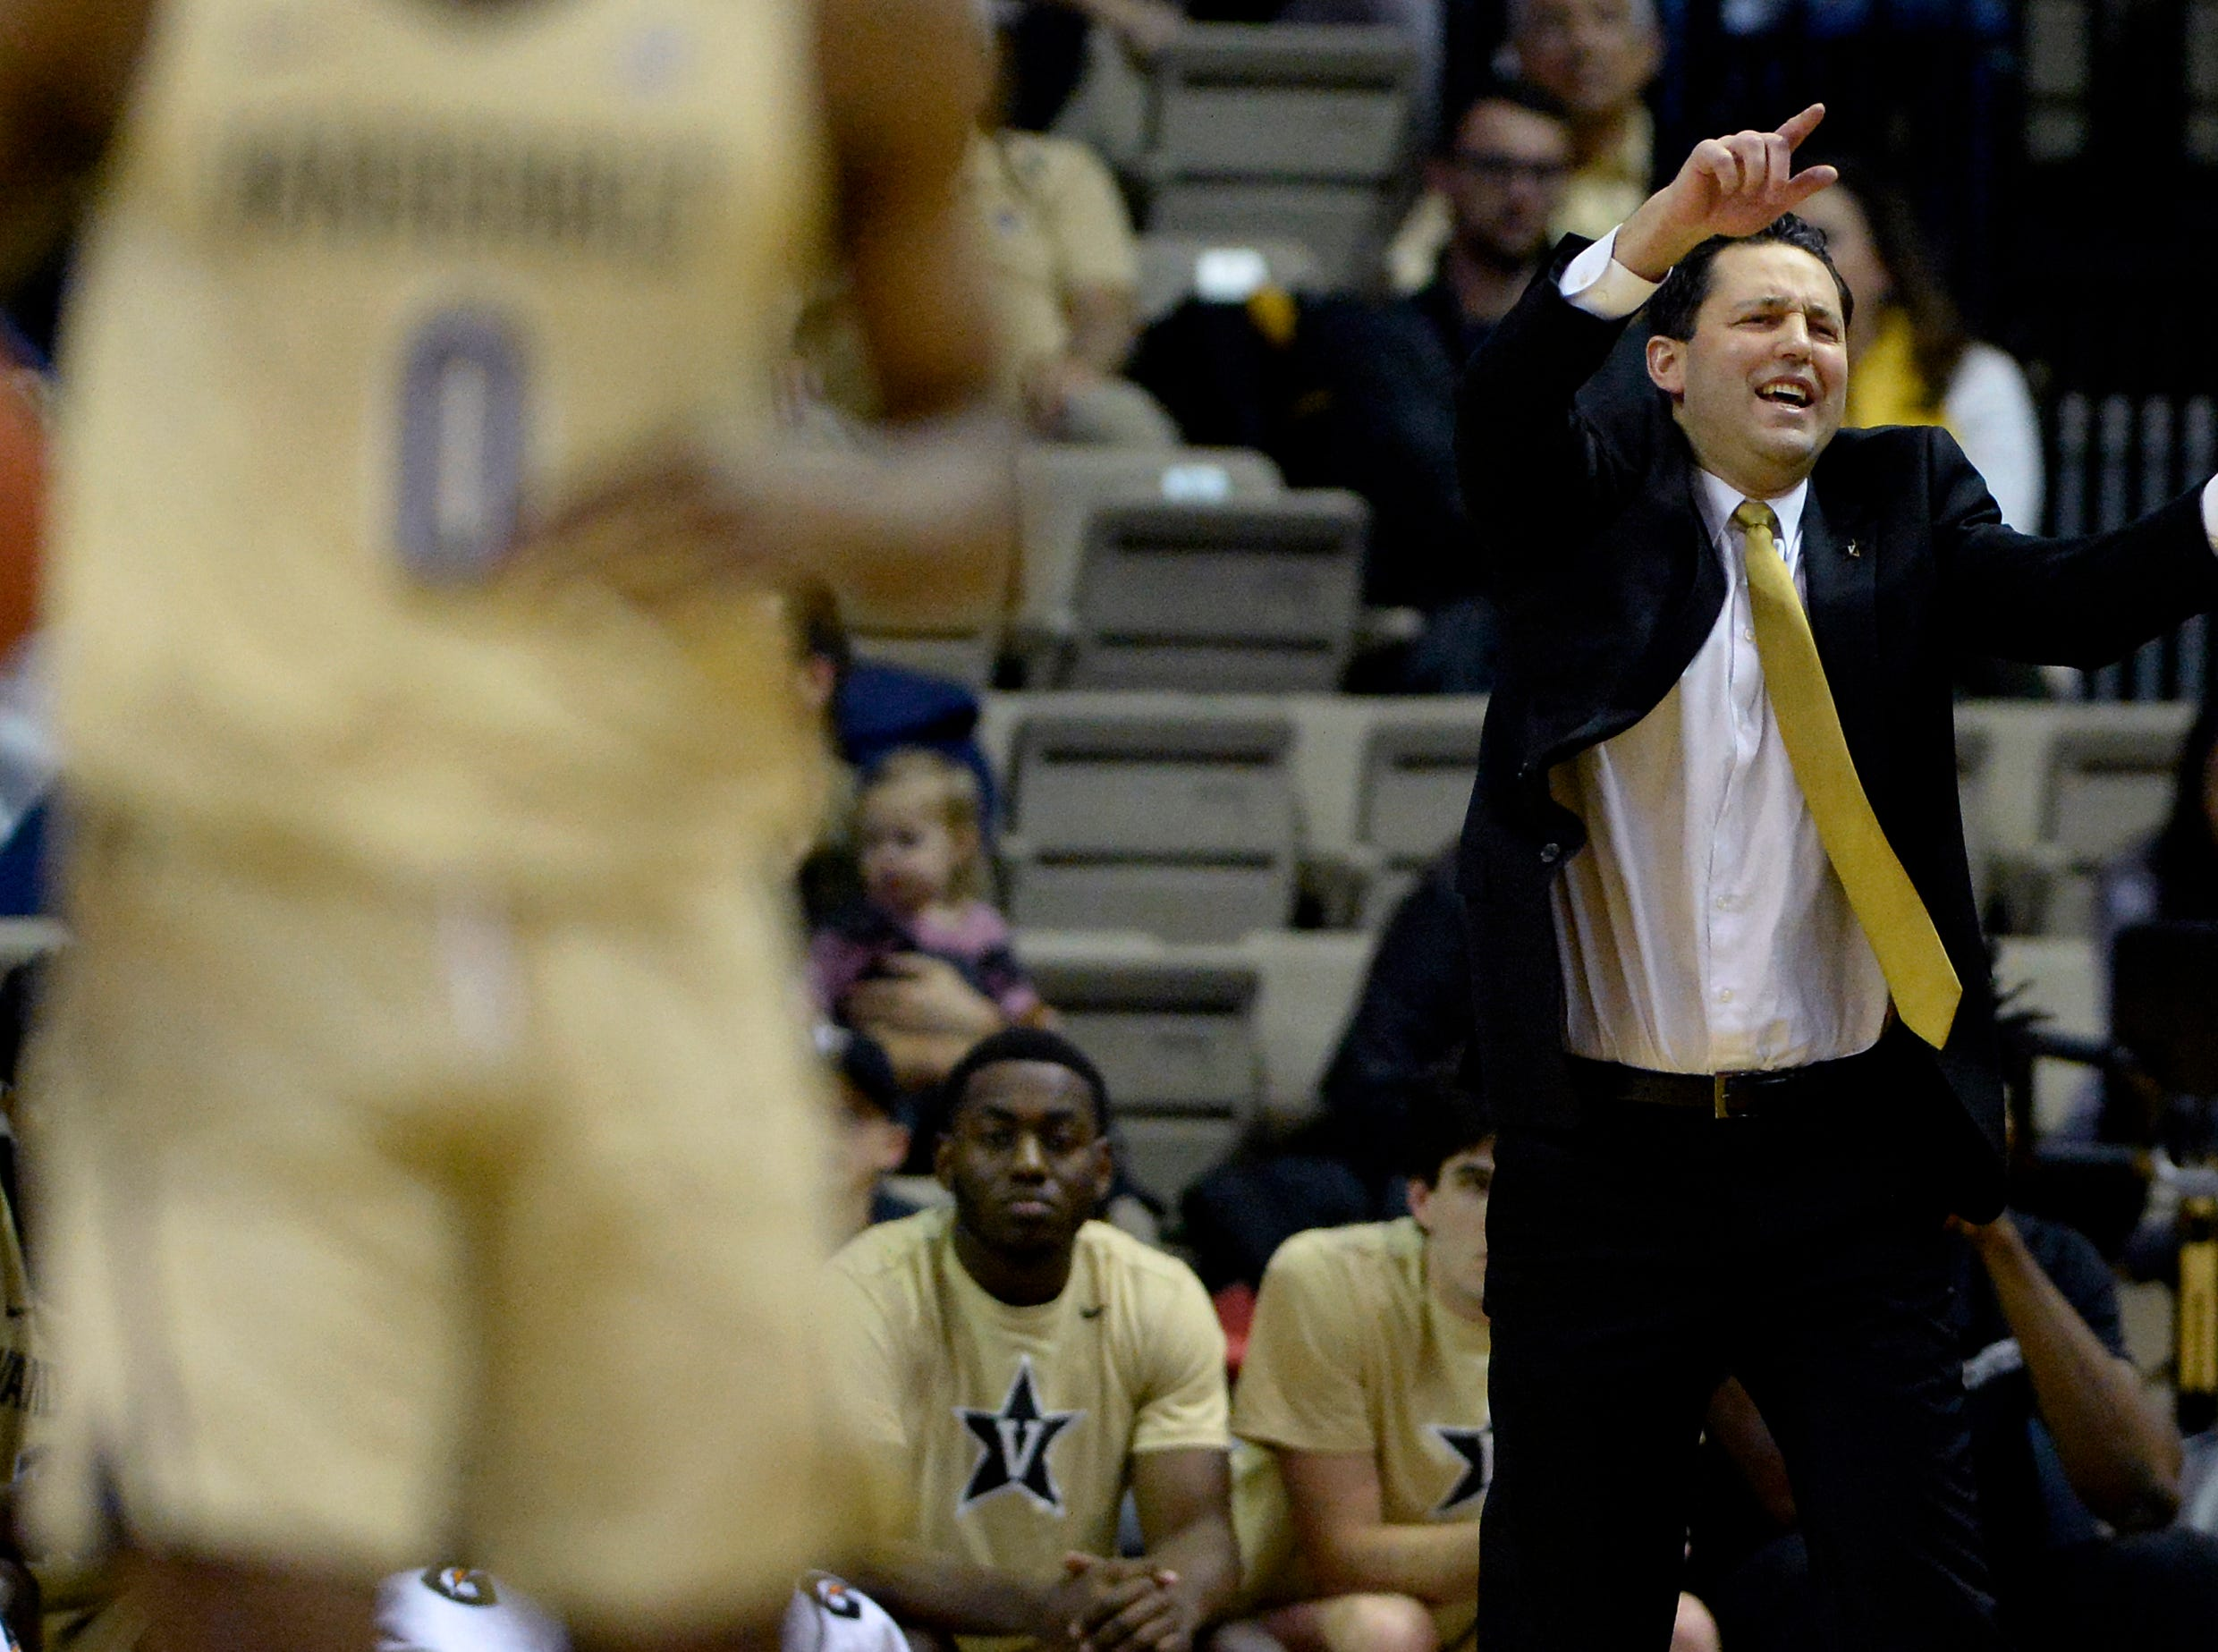 Vanderbilt head coach Bryce Drew directs his players against Kent State during the first half of an NCAA college basketball game Friday, Nov. 23, 2018, in Nashville, Tenn.